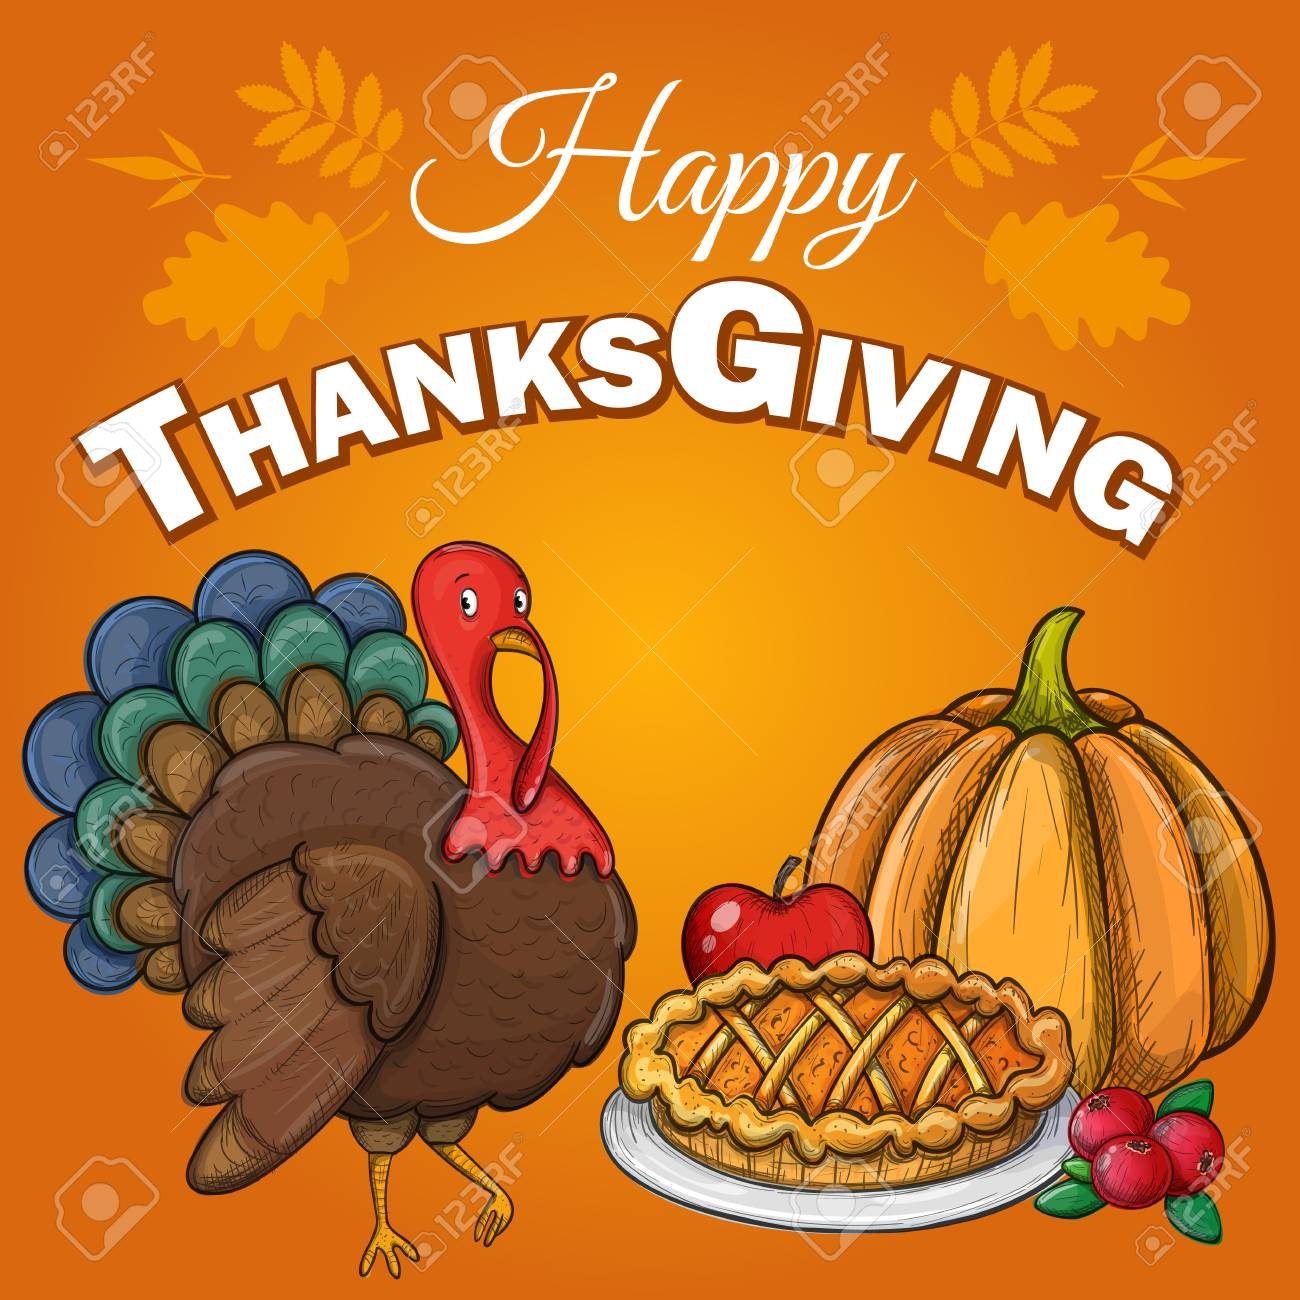 Thanksgiving Greeting Background With Thanksgiving Food And Turkey